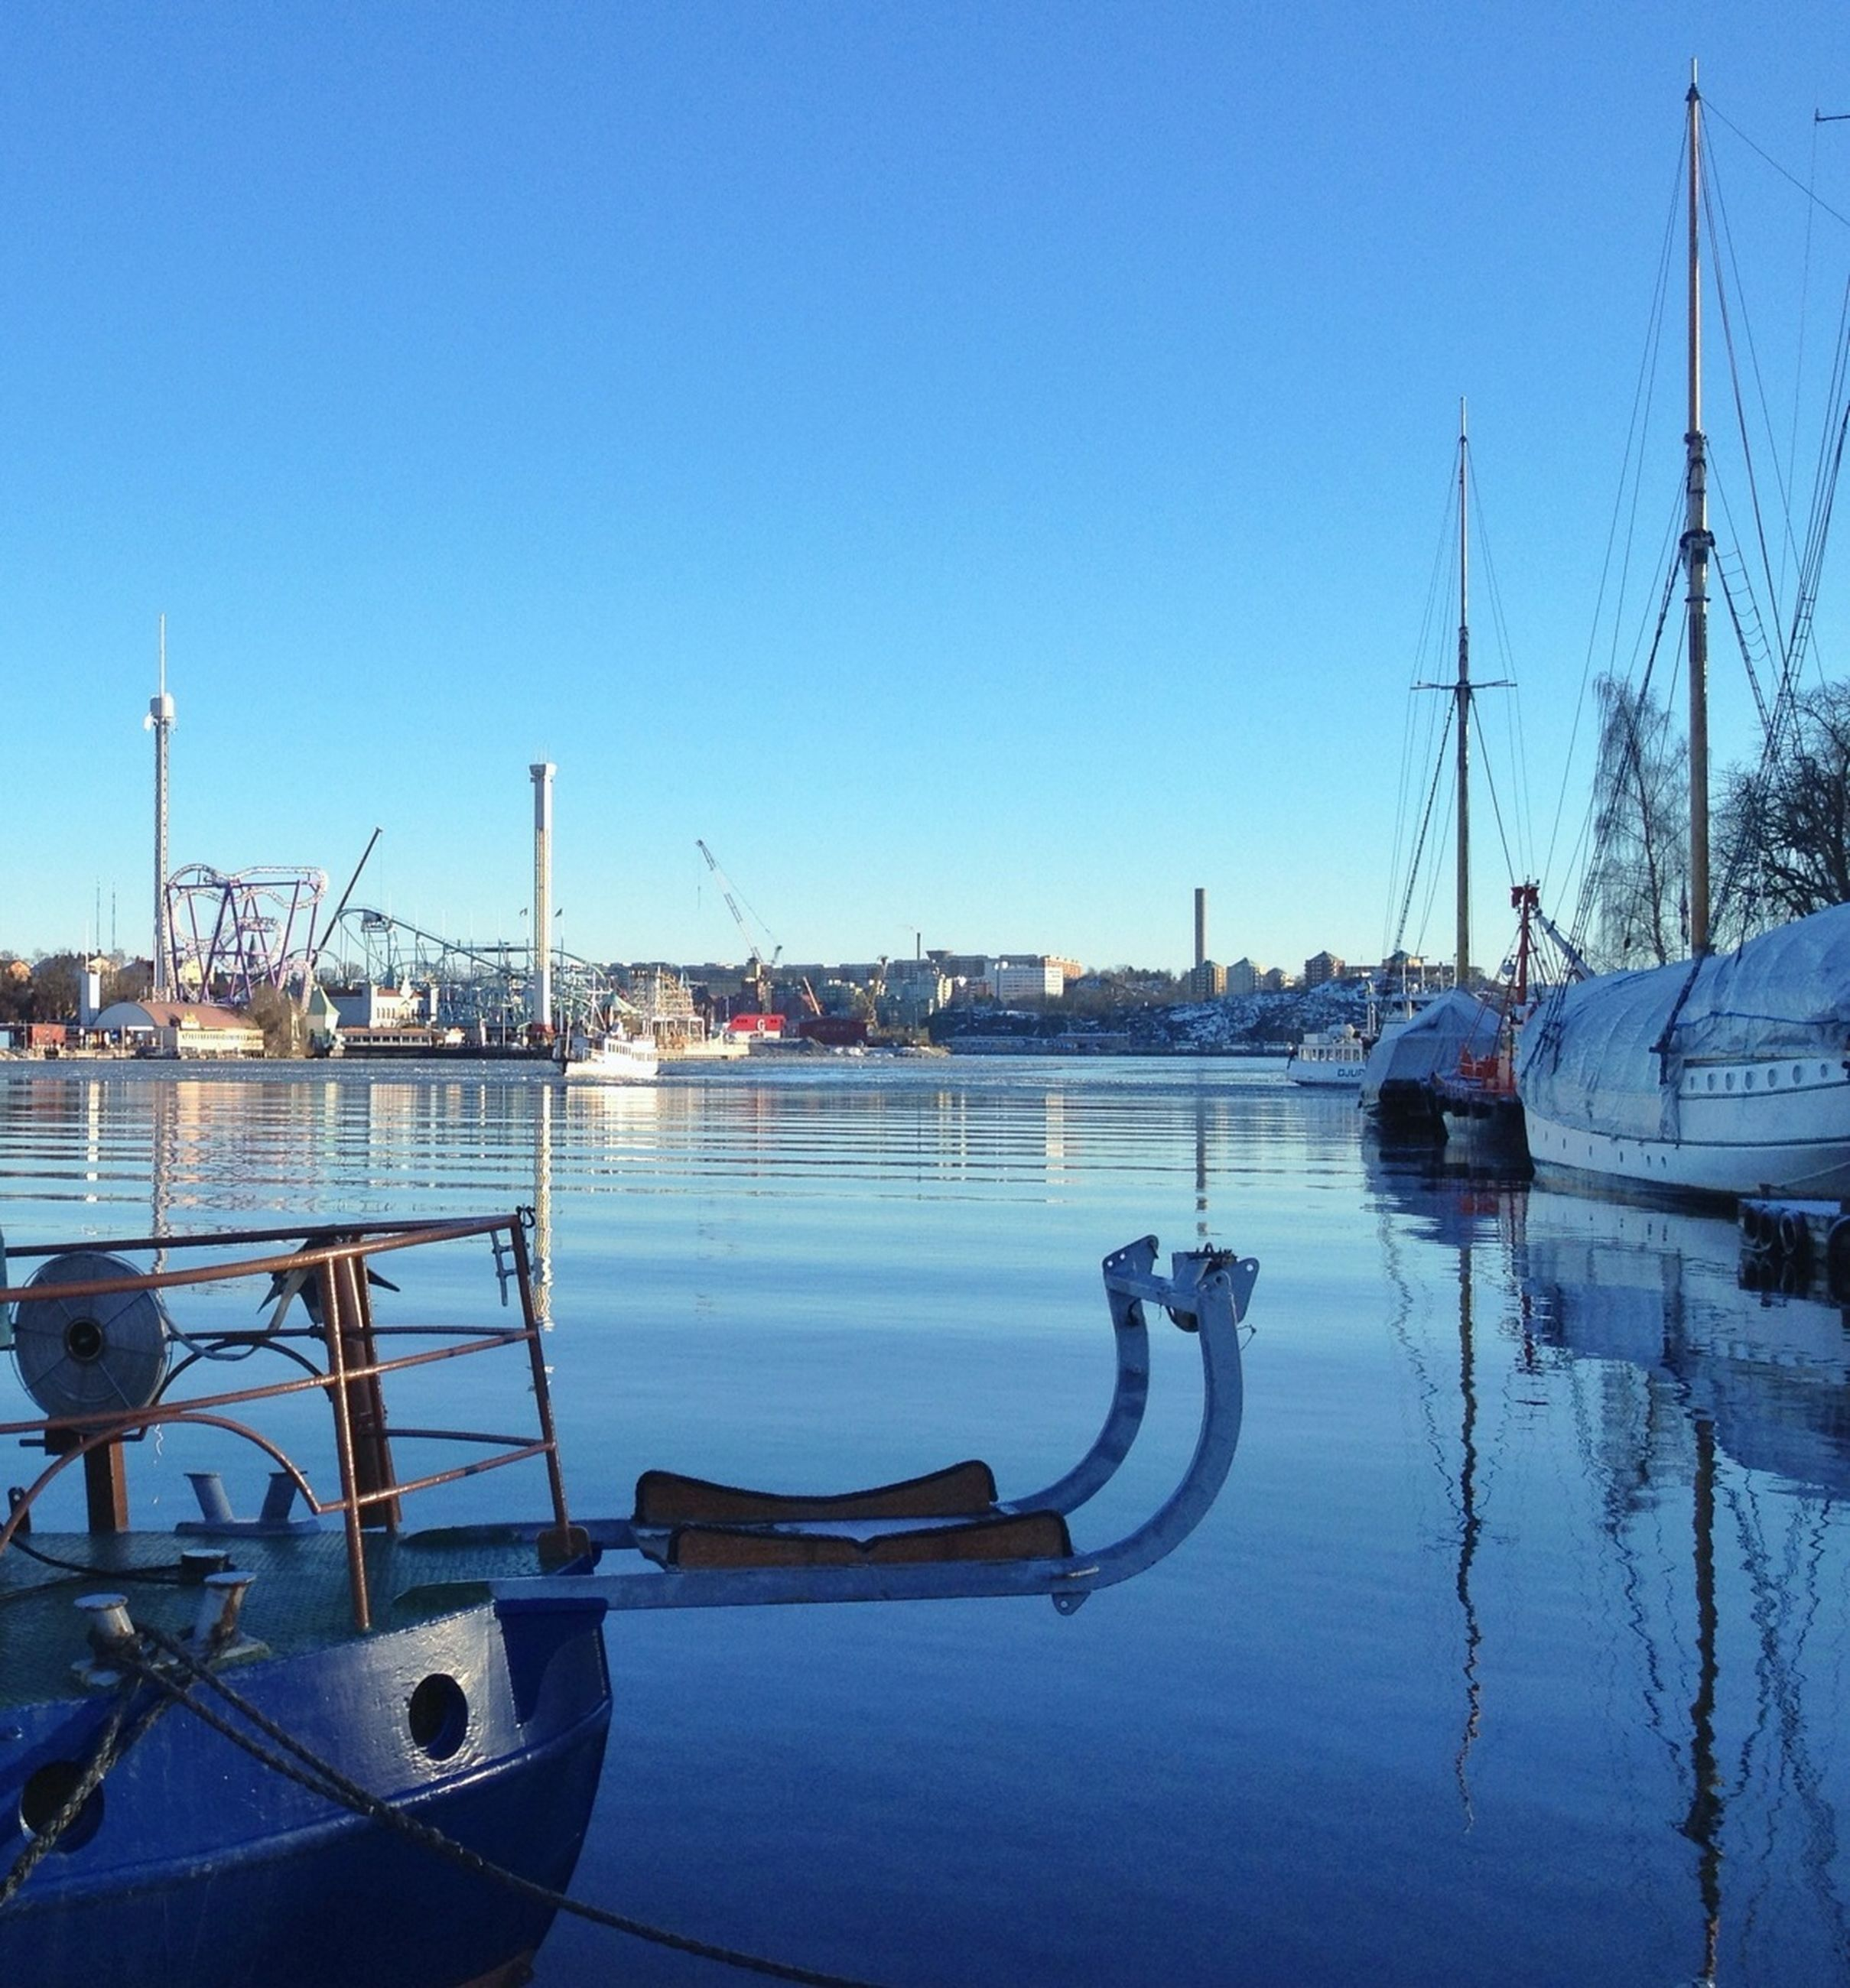 nautical vessel, transportation, mode of transport, moored, clear sky, boat, water, harbor, copy space, blue, mast, commercial dock, waterfront, sailboat, sea, river, reflection, travel, marina, outdoors